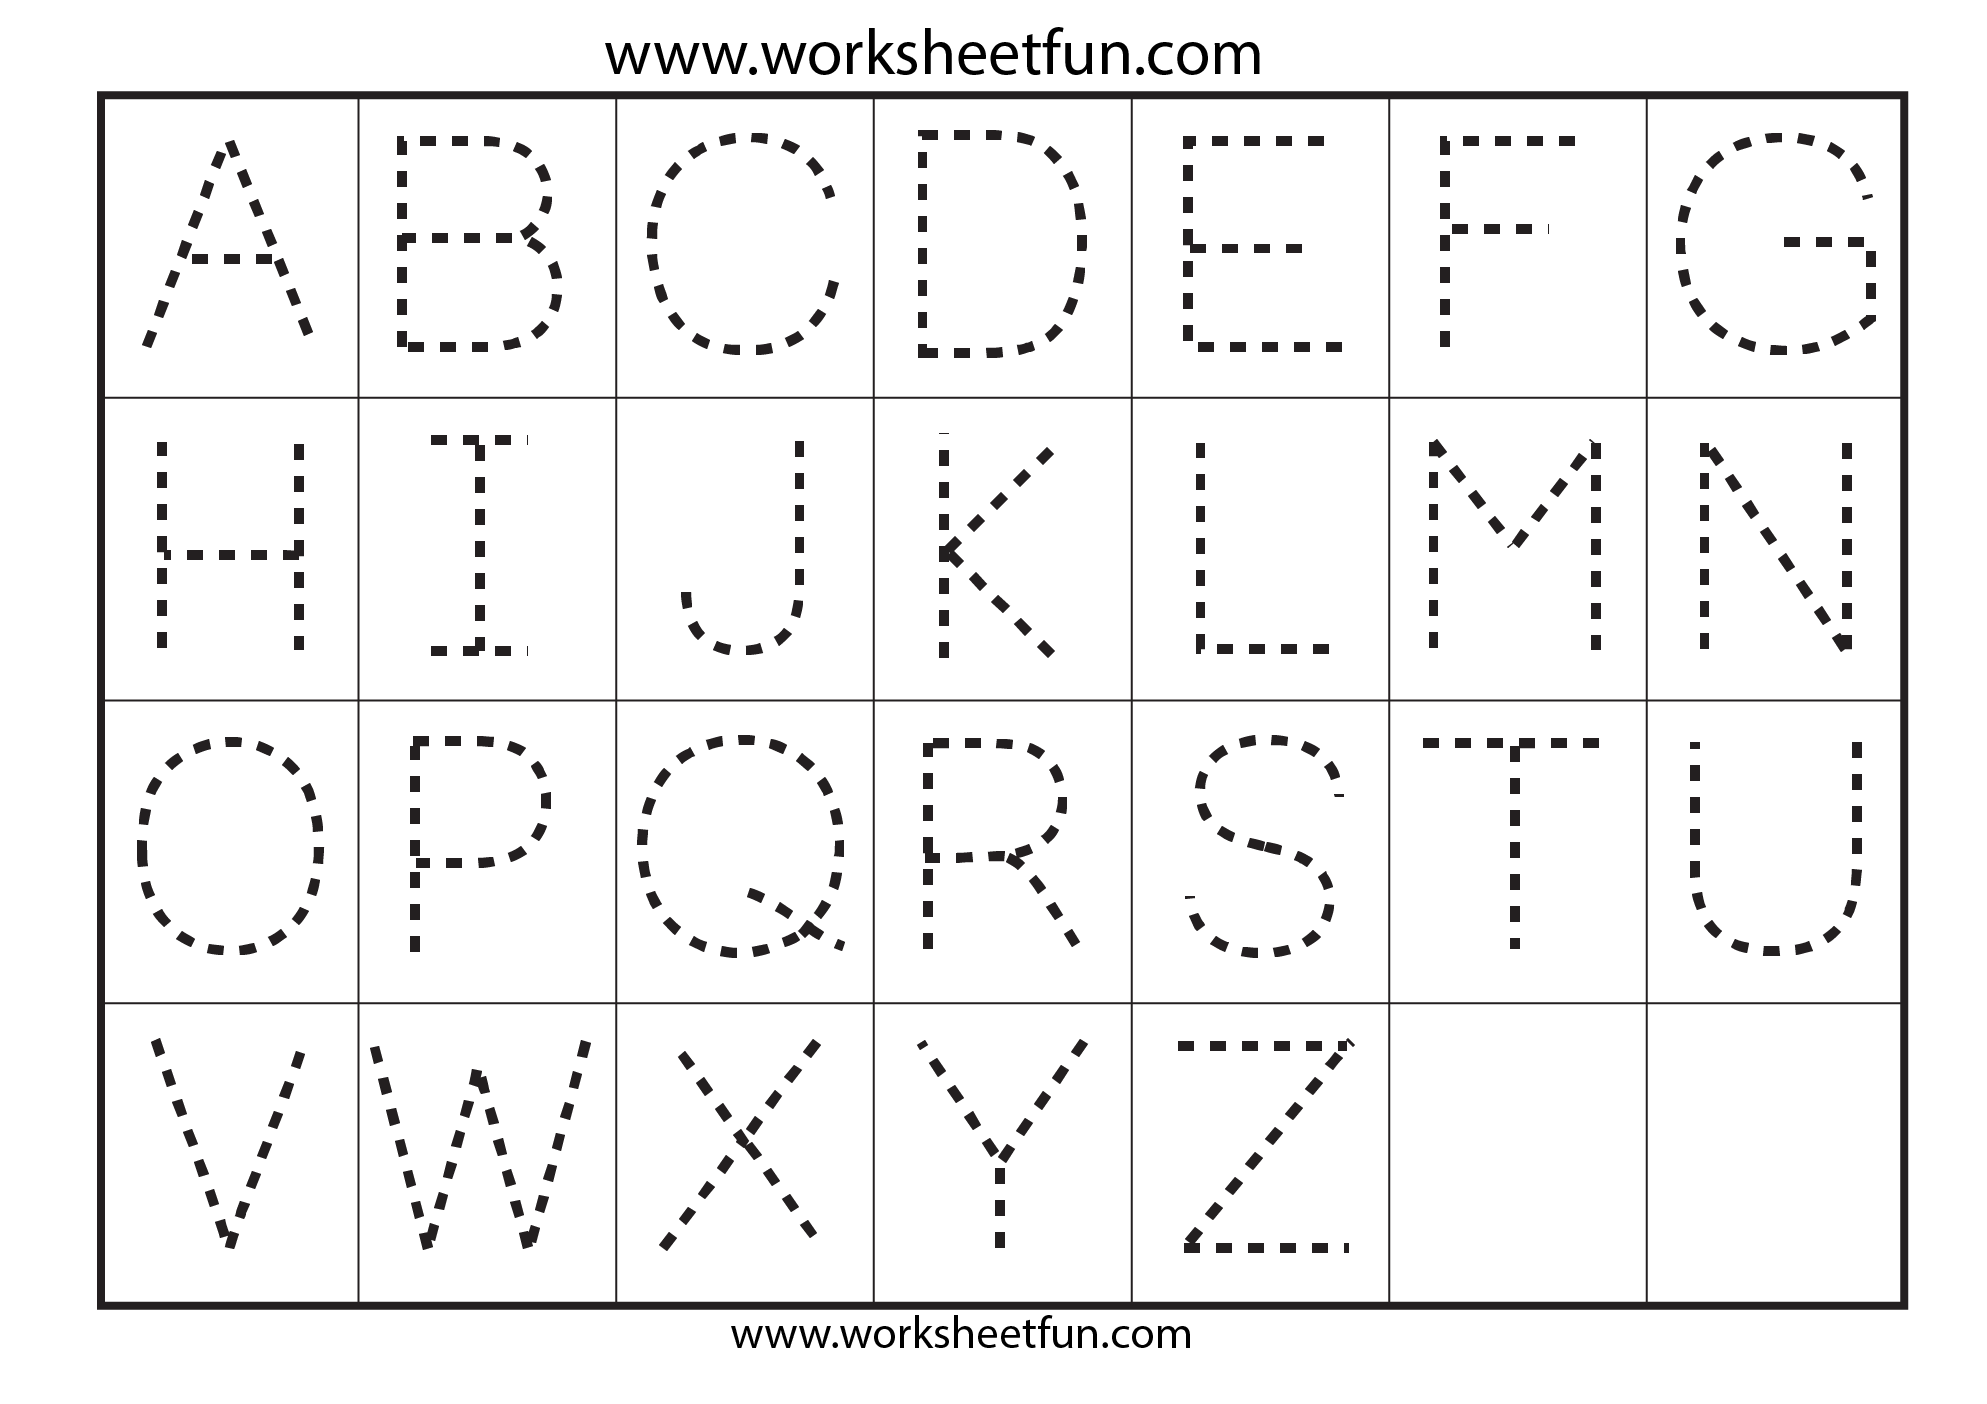 Printables Pre K Alphabet Worksheets alphabet worksheets pre k intrepidpath printable tracing for sheets